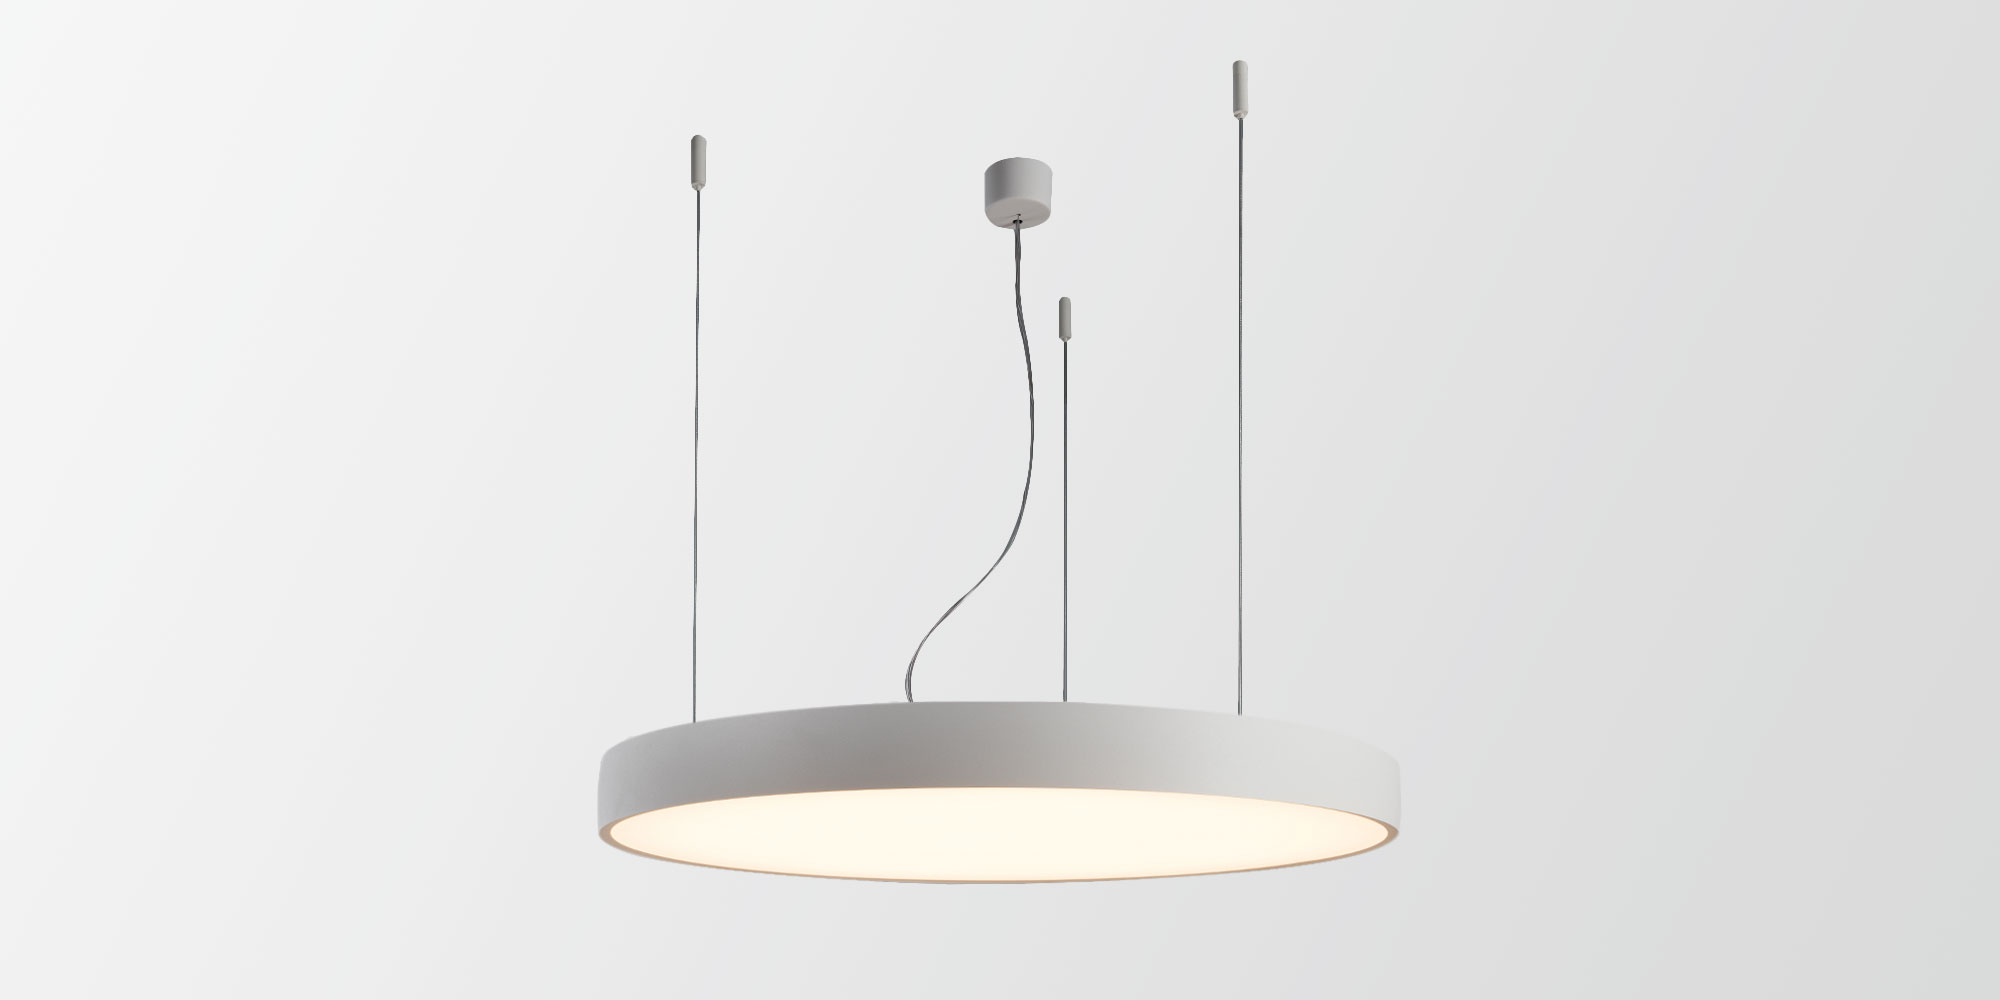 contemporary architectural projects love a minimalist slim lighting design flat moon is a stylish reduced height fixture 78 mm that distributes a soft - Suspension Design Led